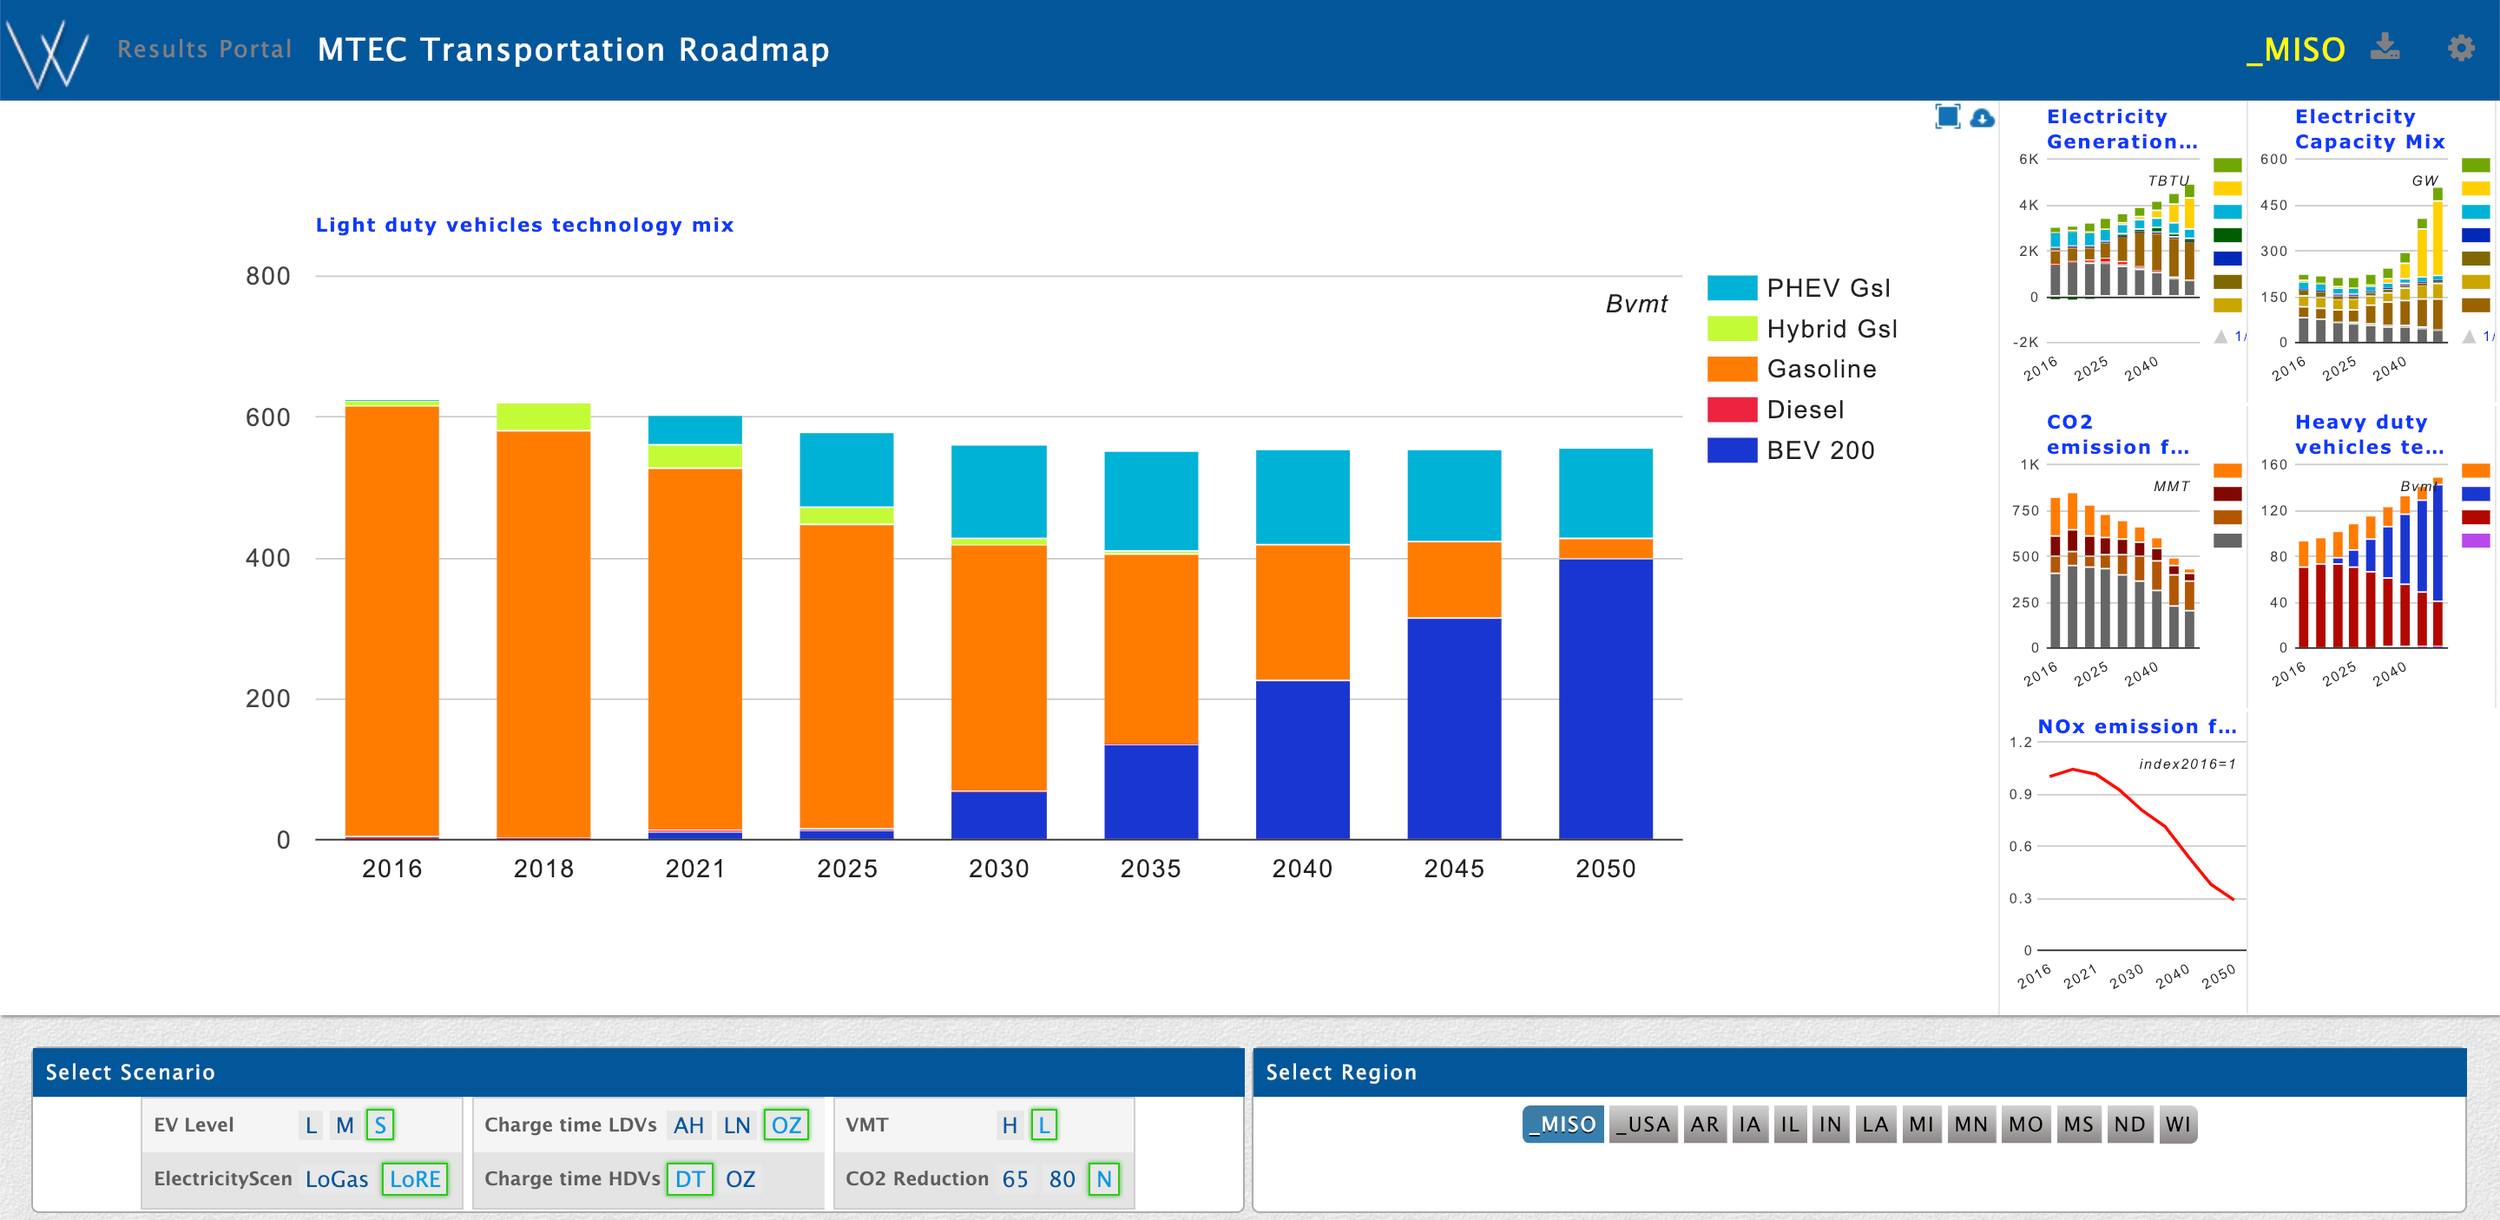 Vehicle, power sector, and emissions results available in the MTEC portal